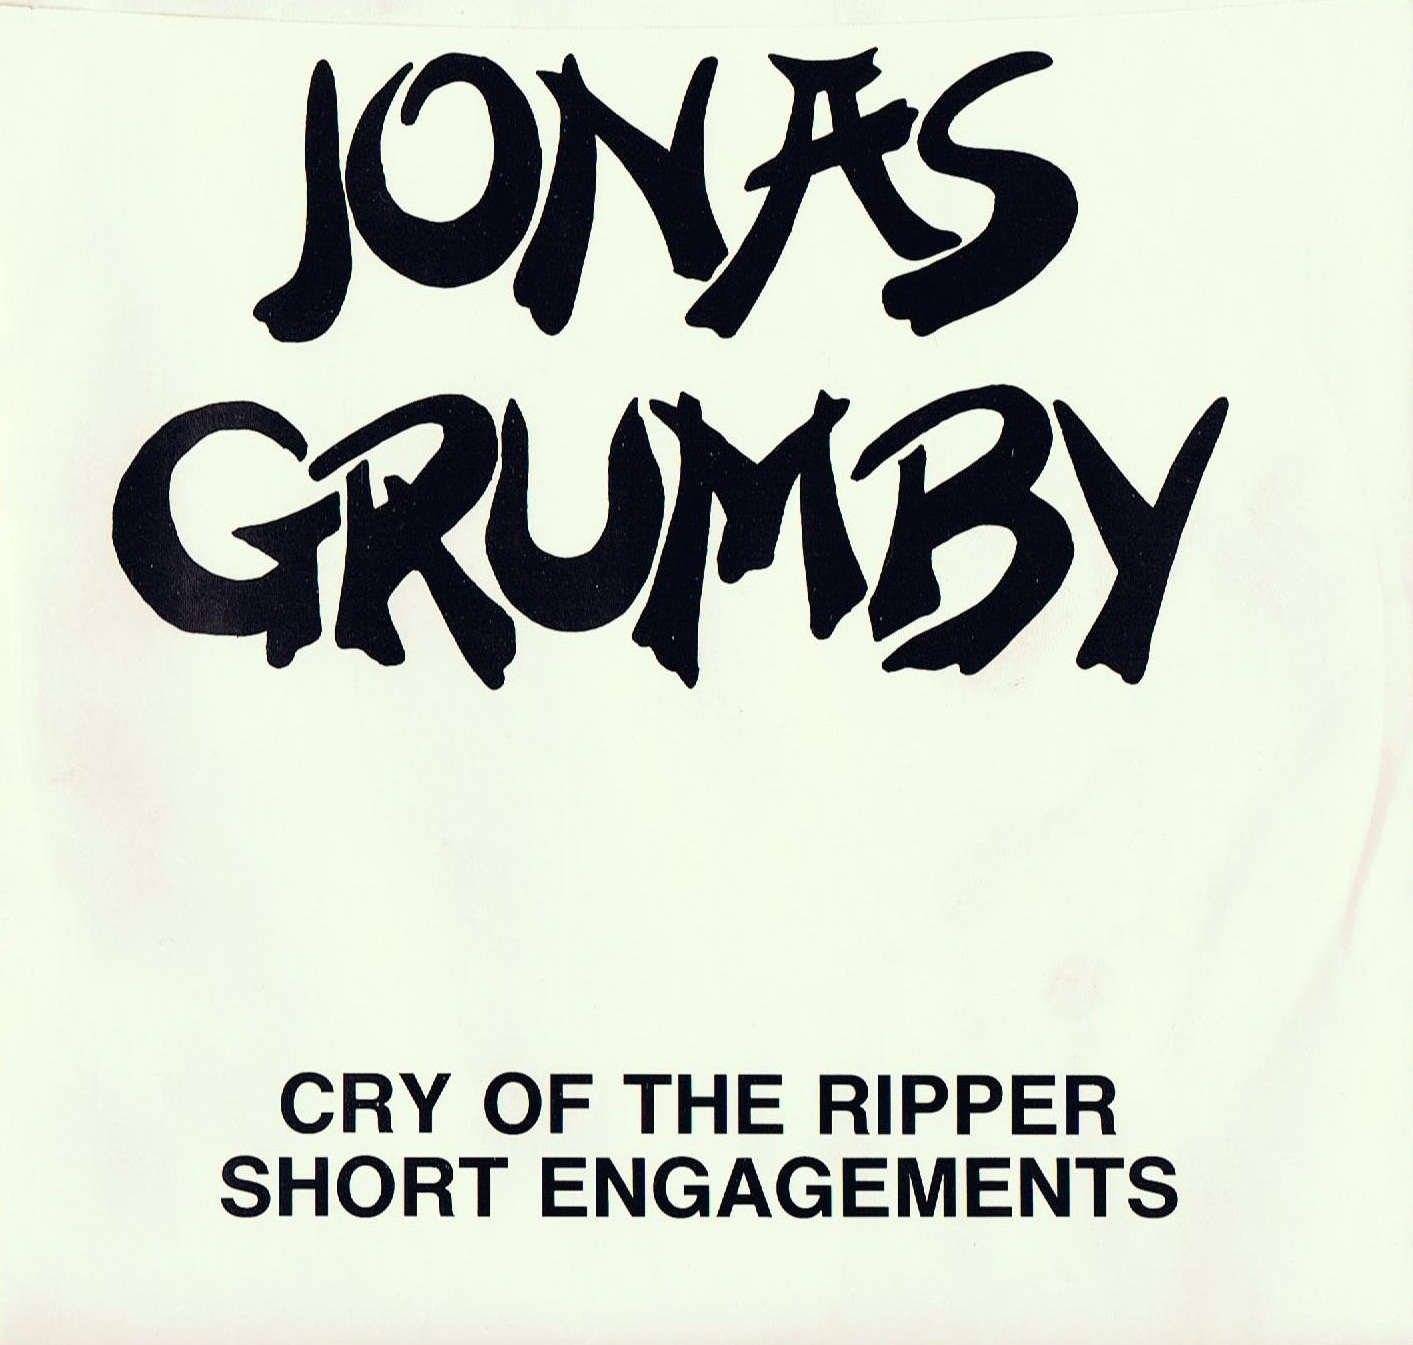 Jonas Grumby Cry Of The Ripper Short Engagements